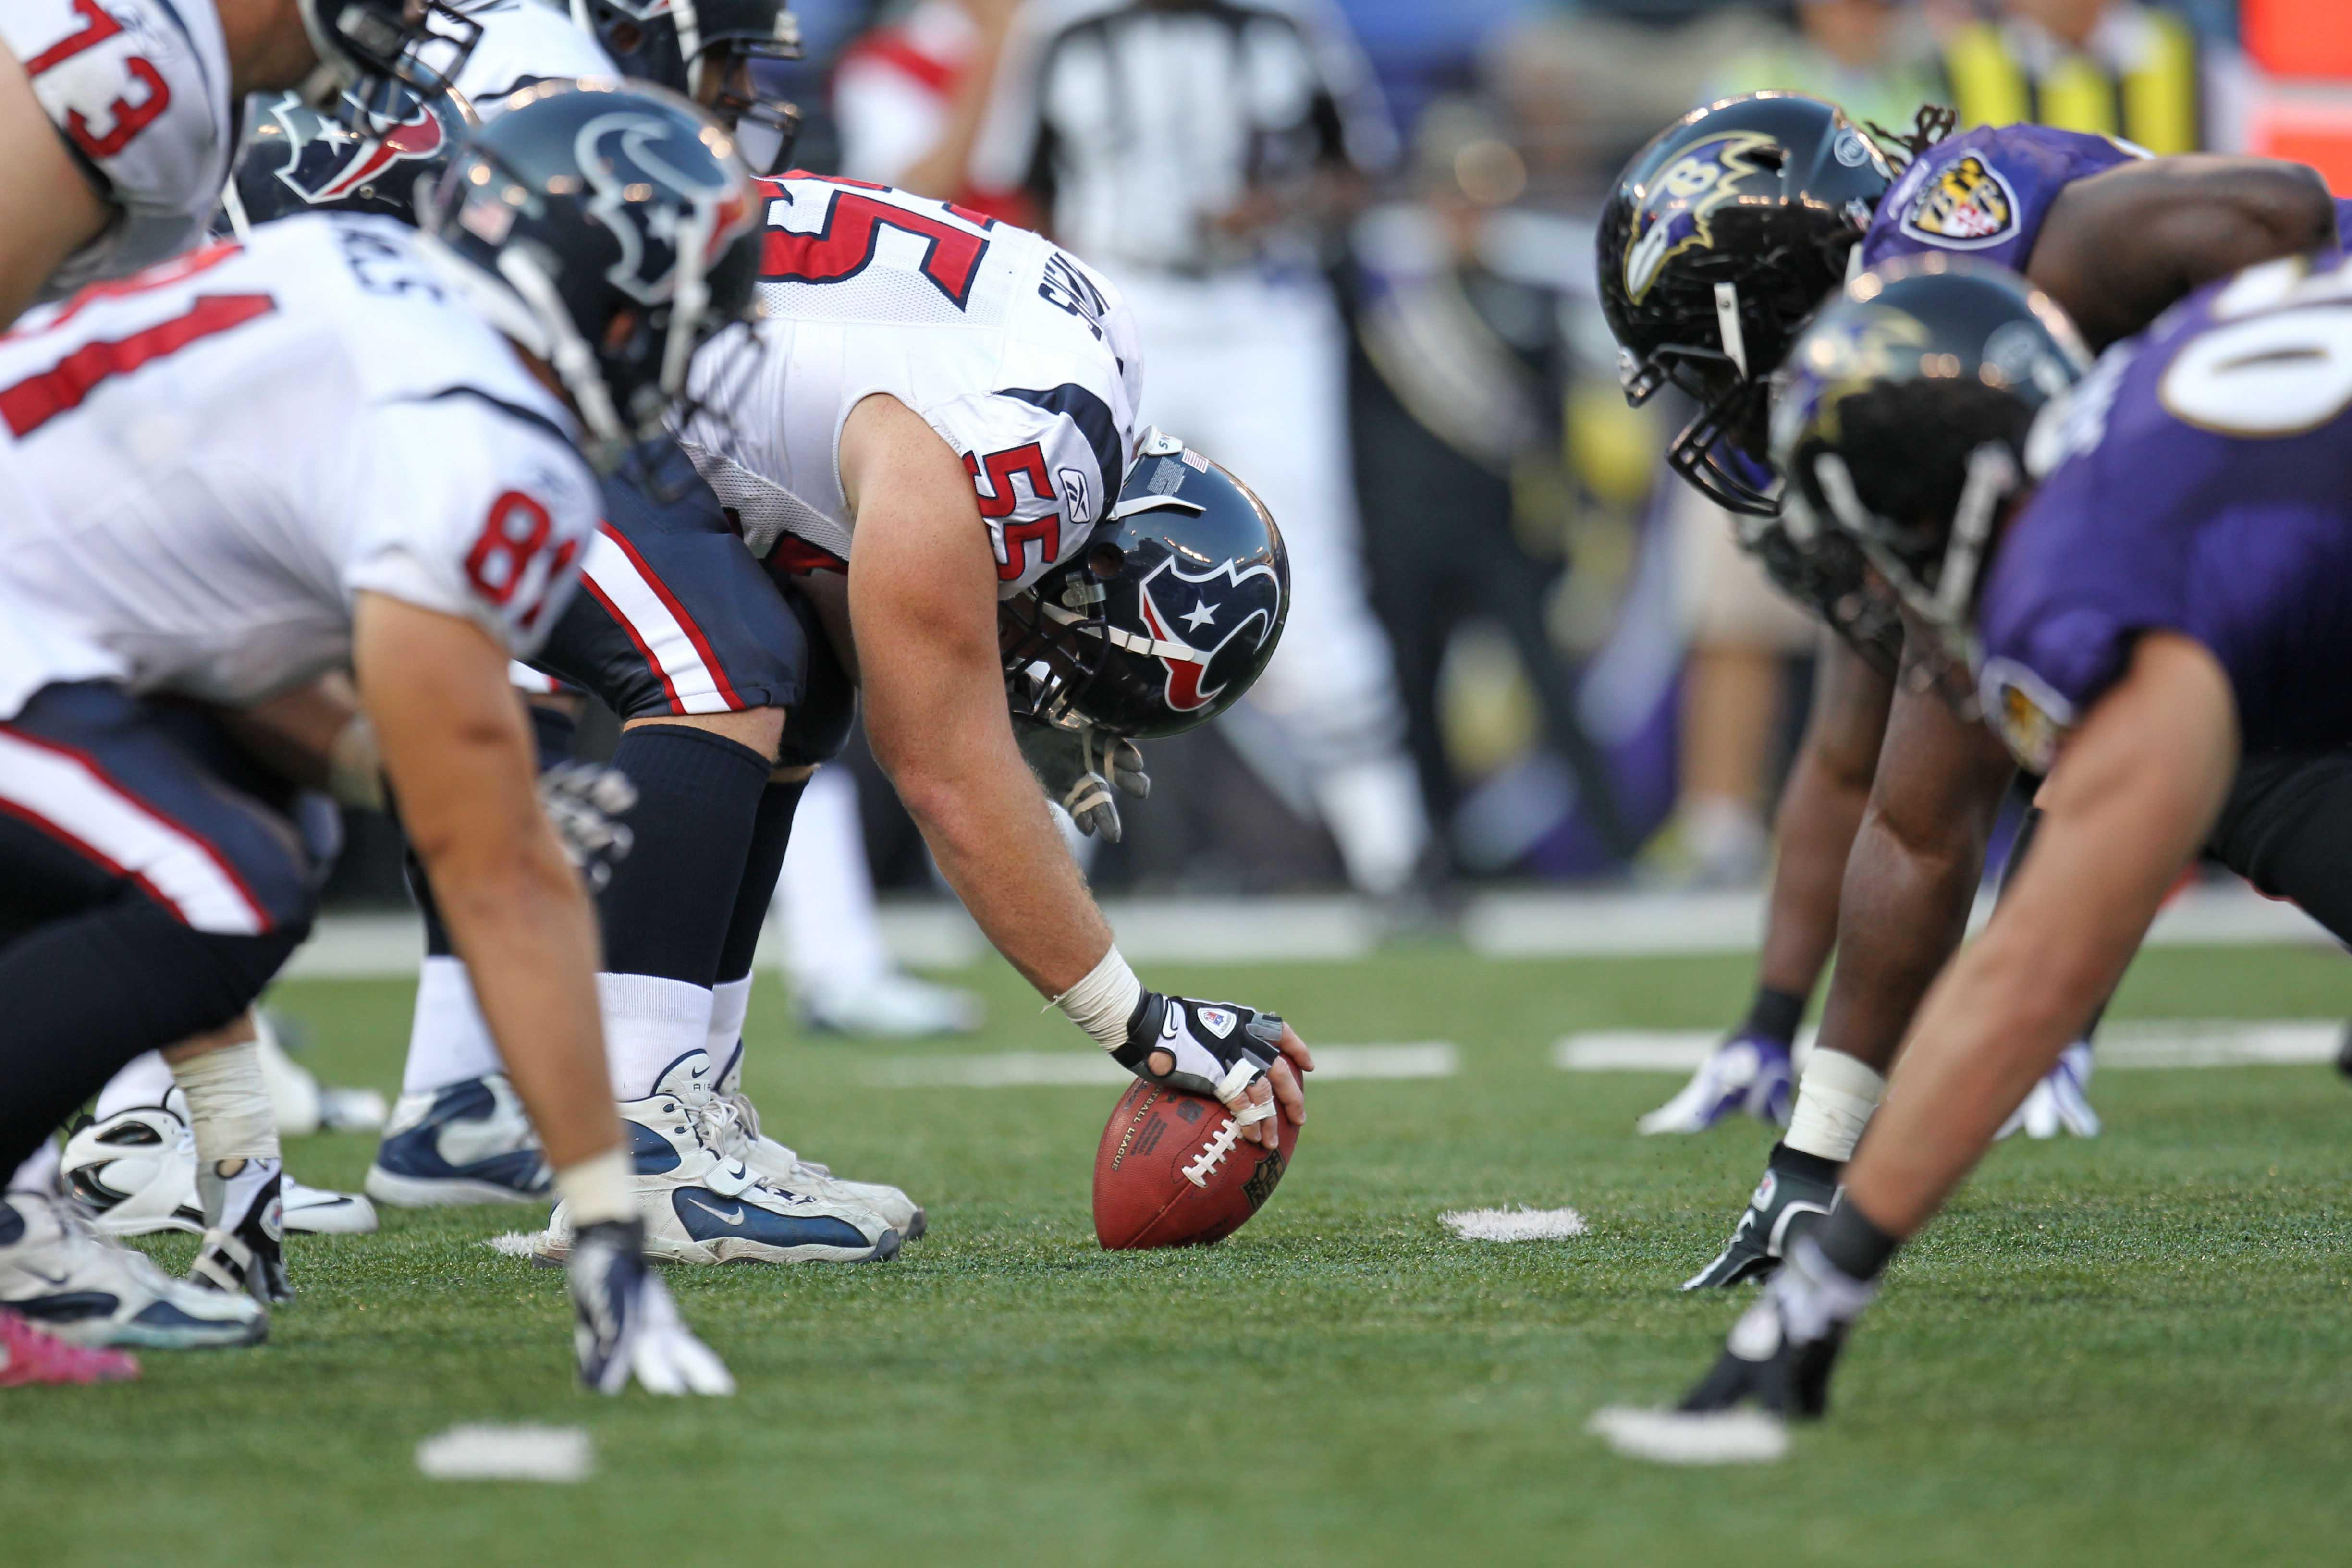 Ravens vs. Texans NFL Week 2: Time, TV channel and how to stream online